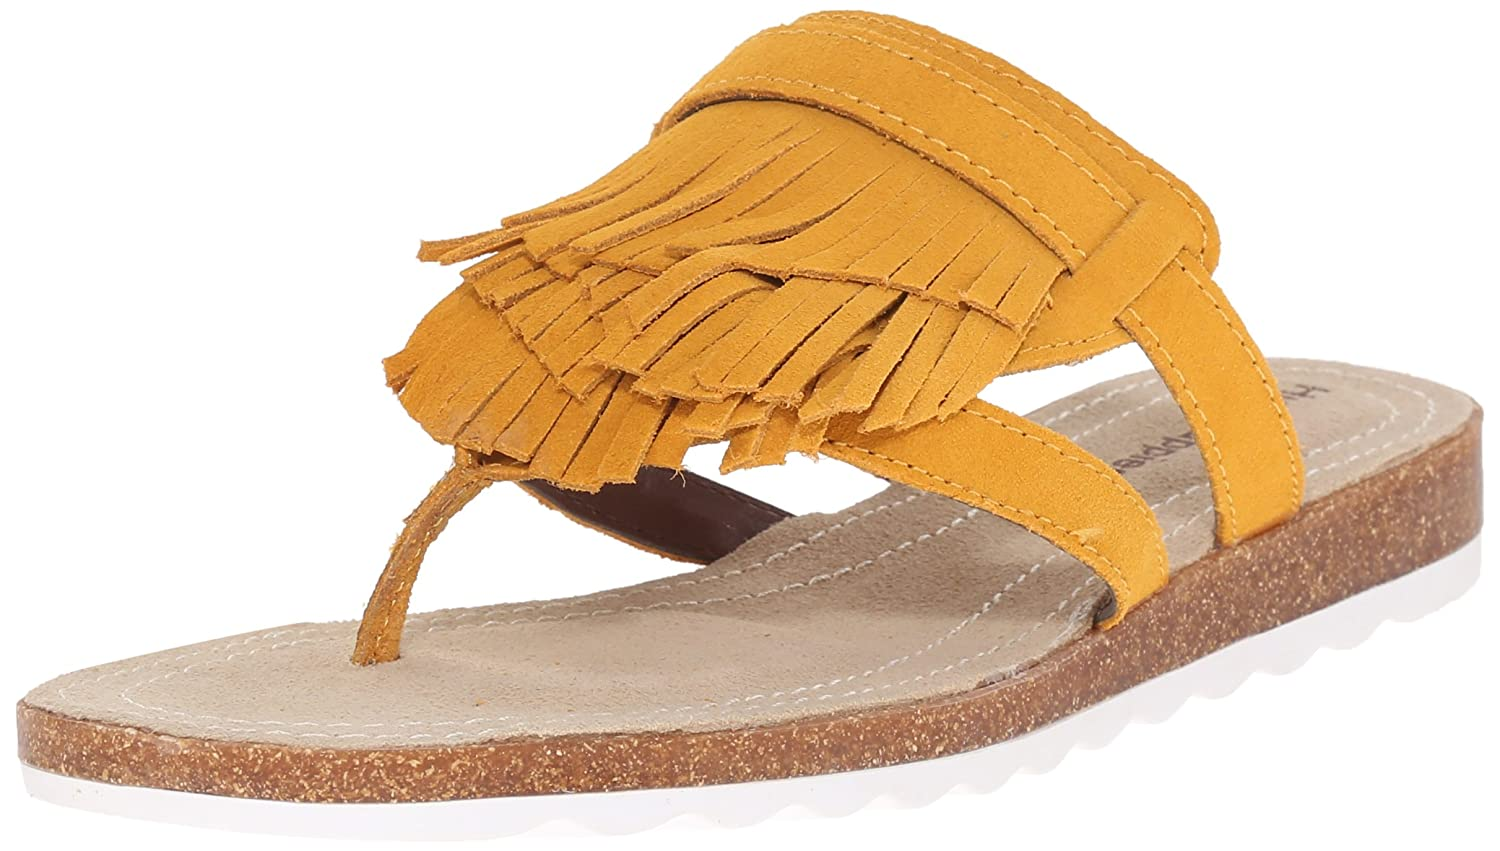 Hush Puppies Women's Bryson Jade Flat Sandal B014M6W3OI 6 B(M) US|Warm Yellow